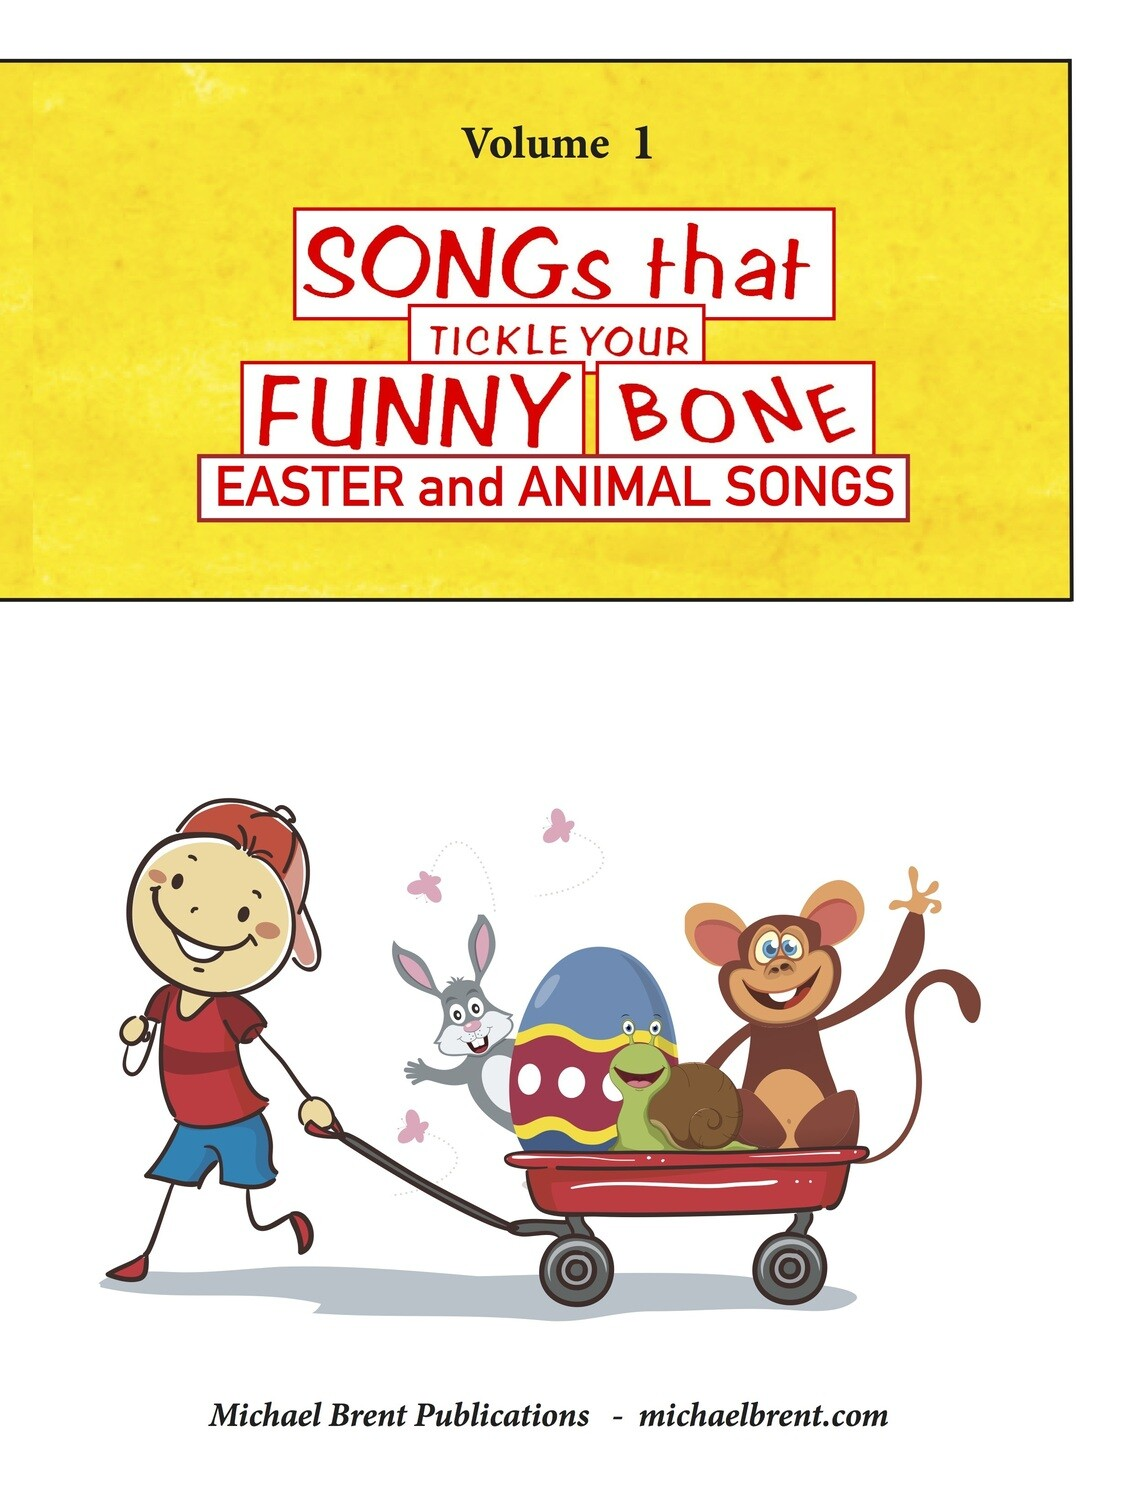 Songs That Tickle Your Funny Bone, Vol. 1 - Songbook